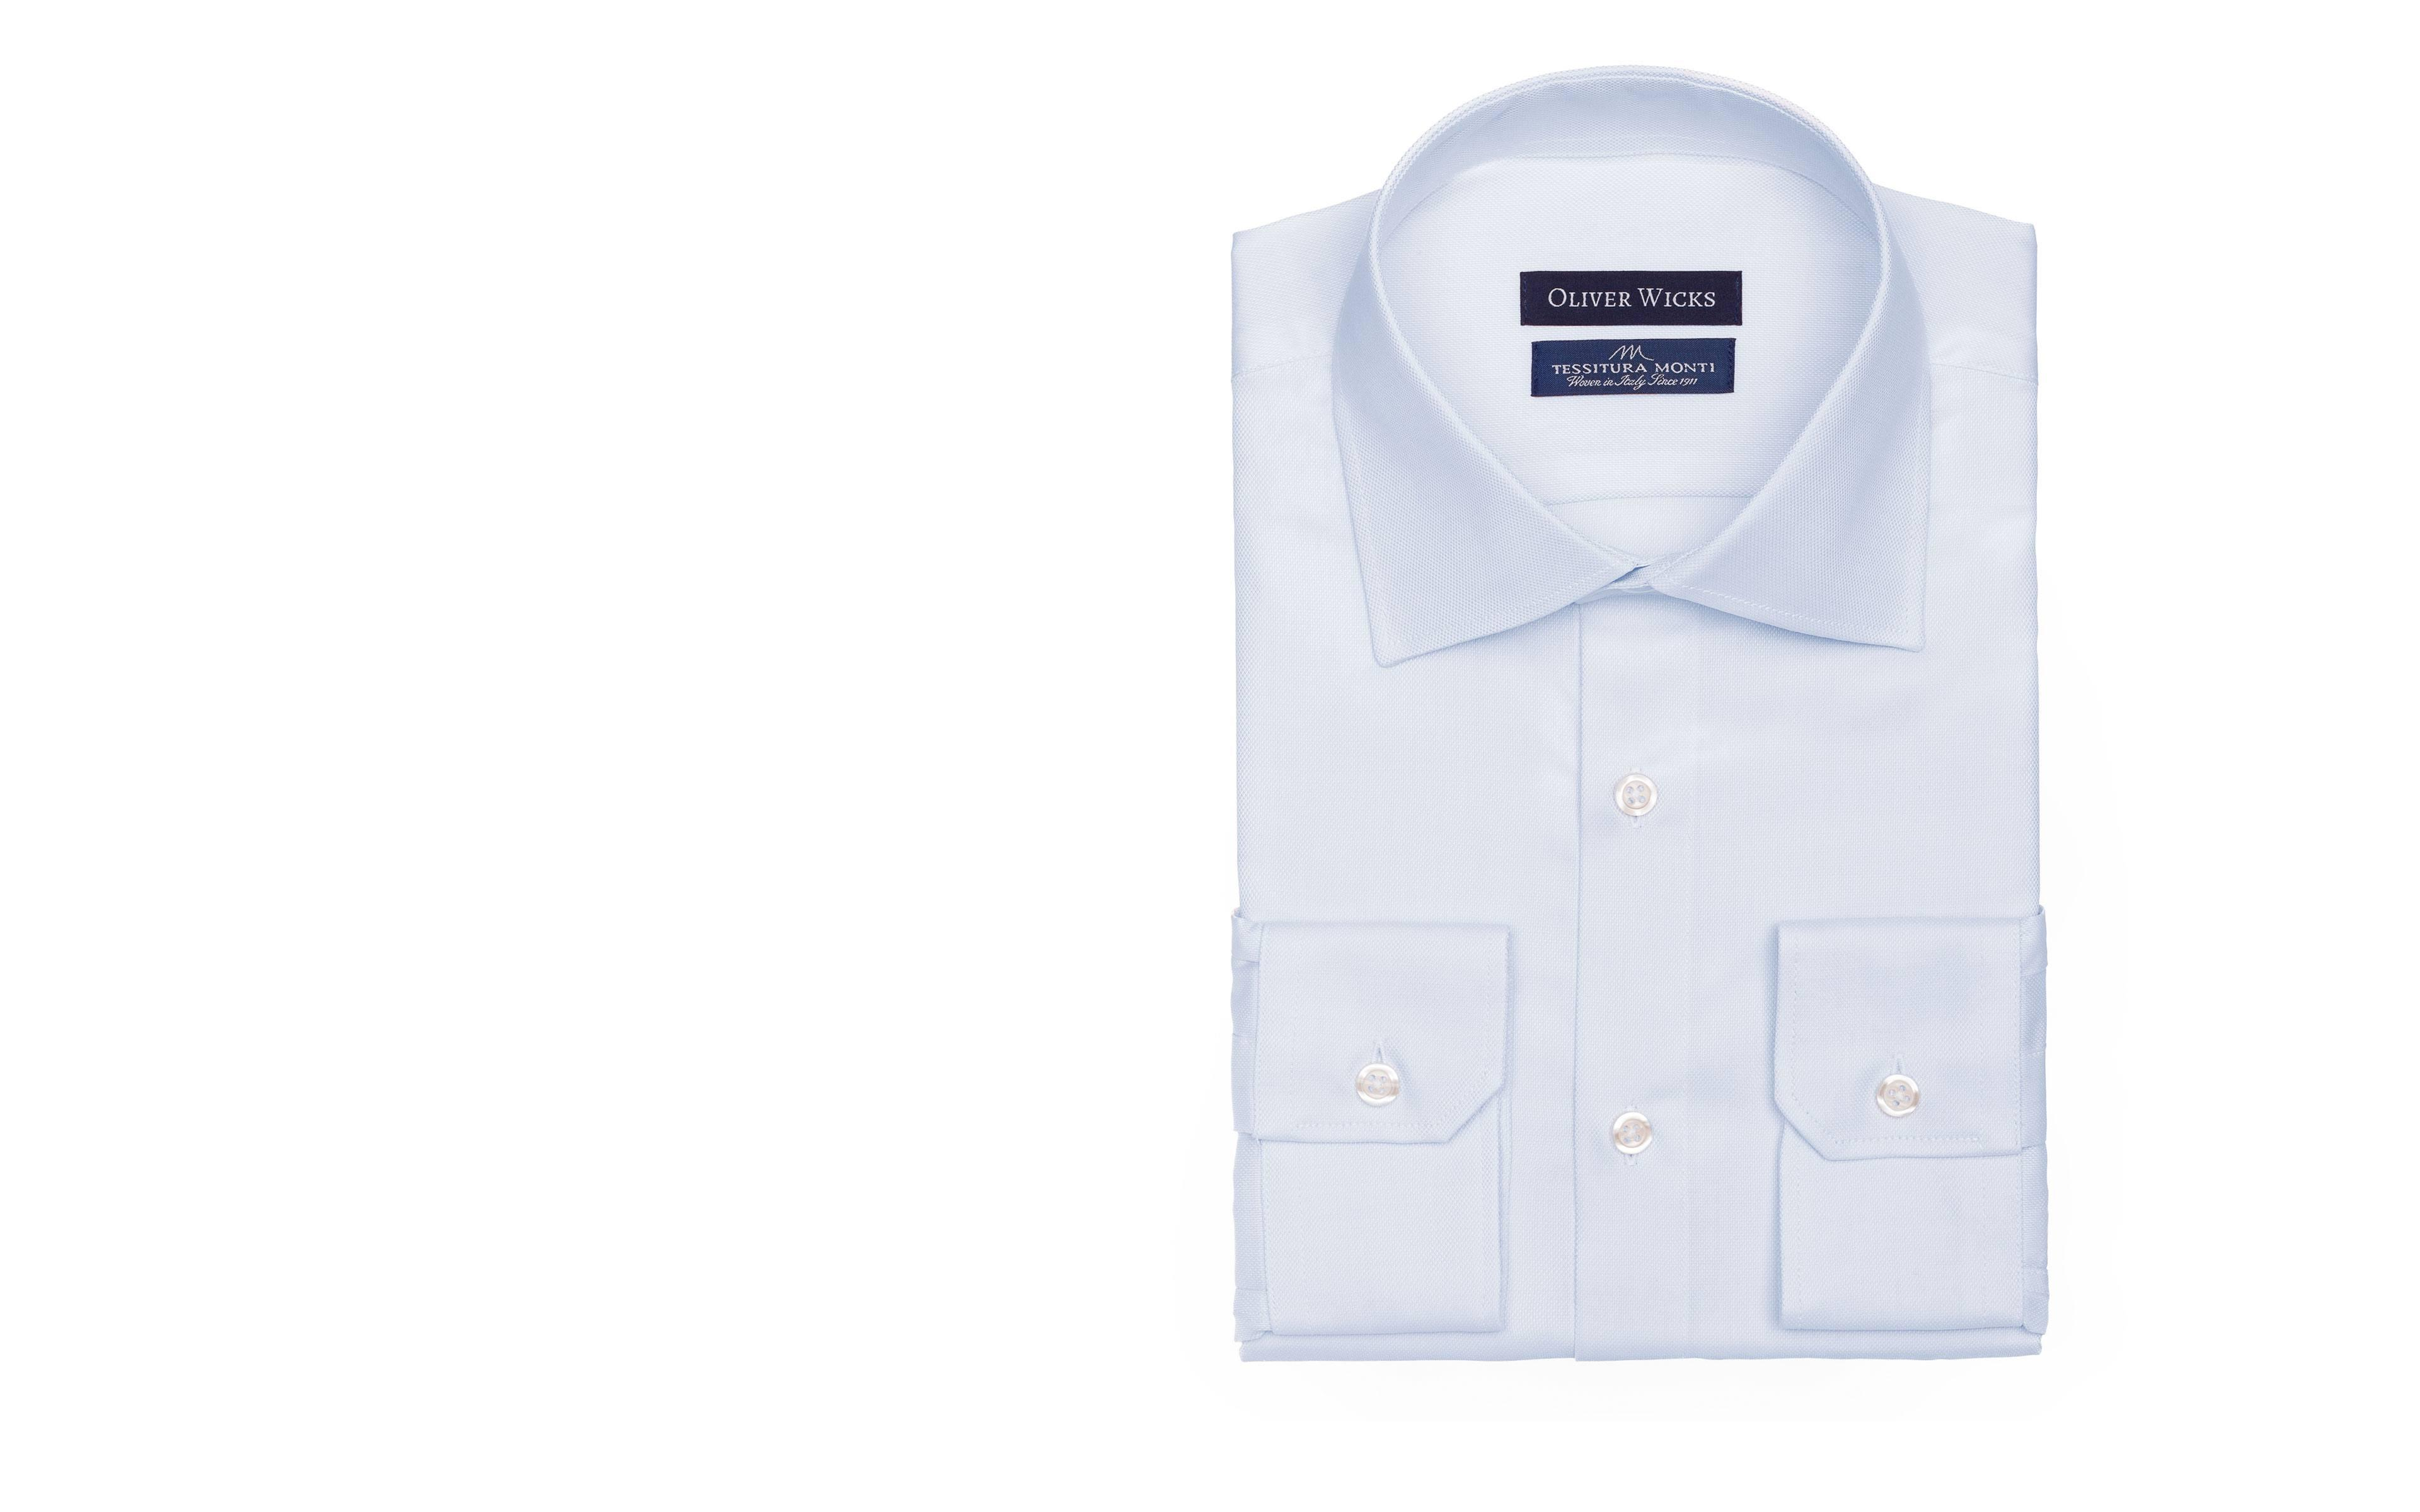 Pastel Blue Two-Ply Cotton Royal Oxford Shirt